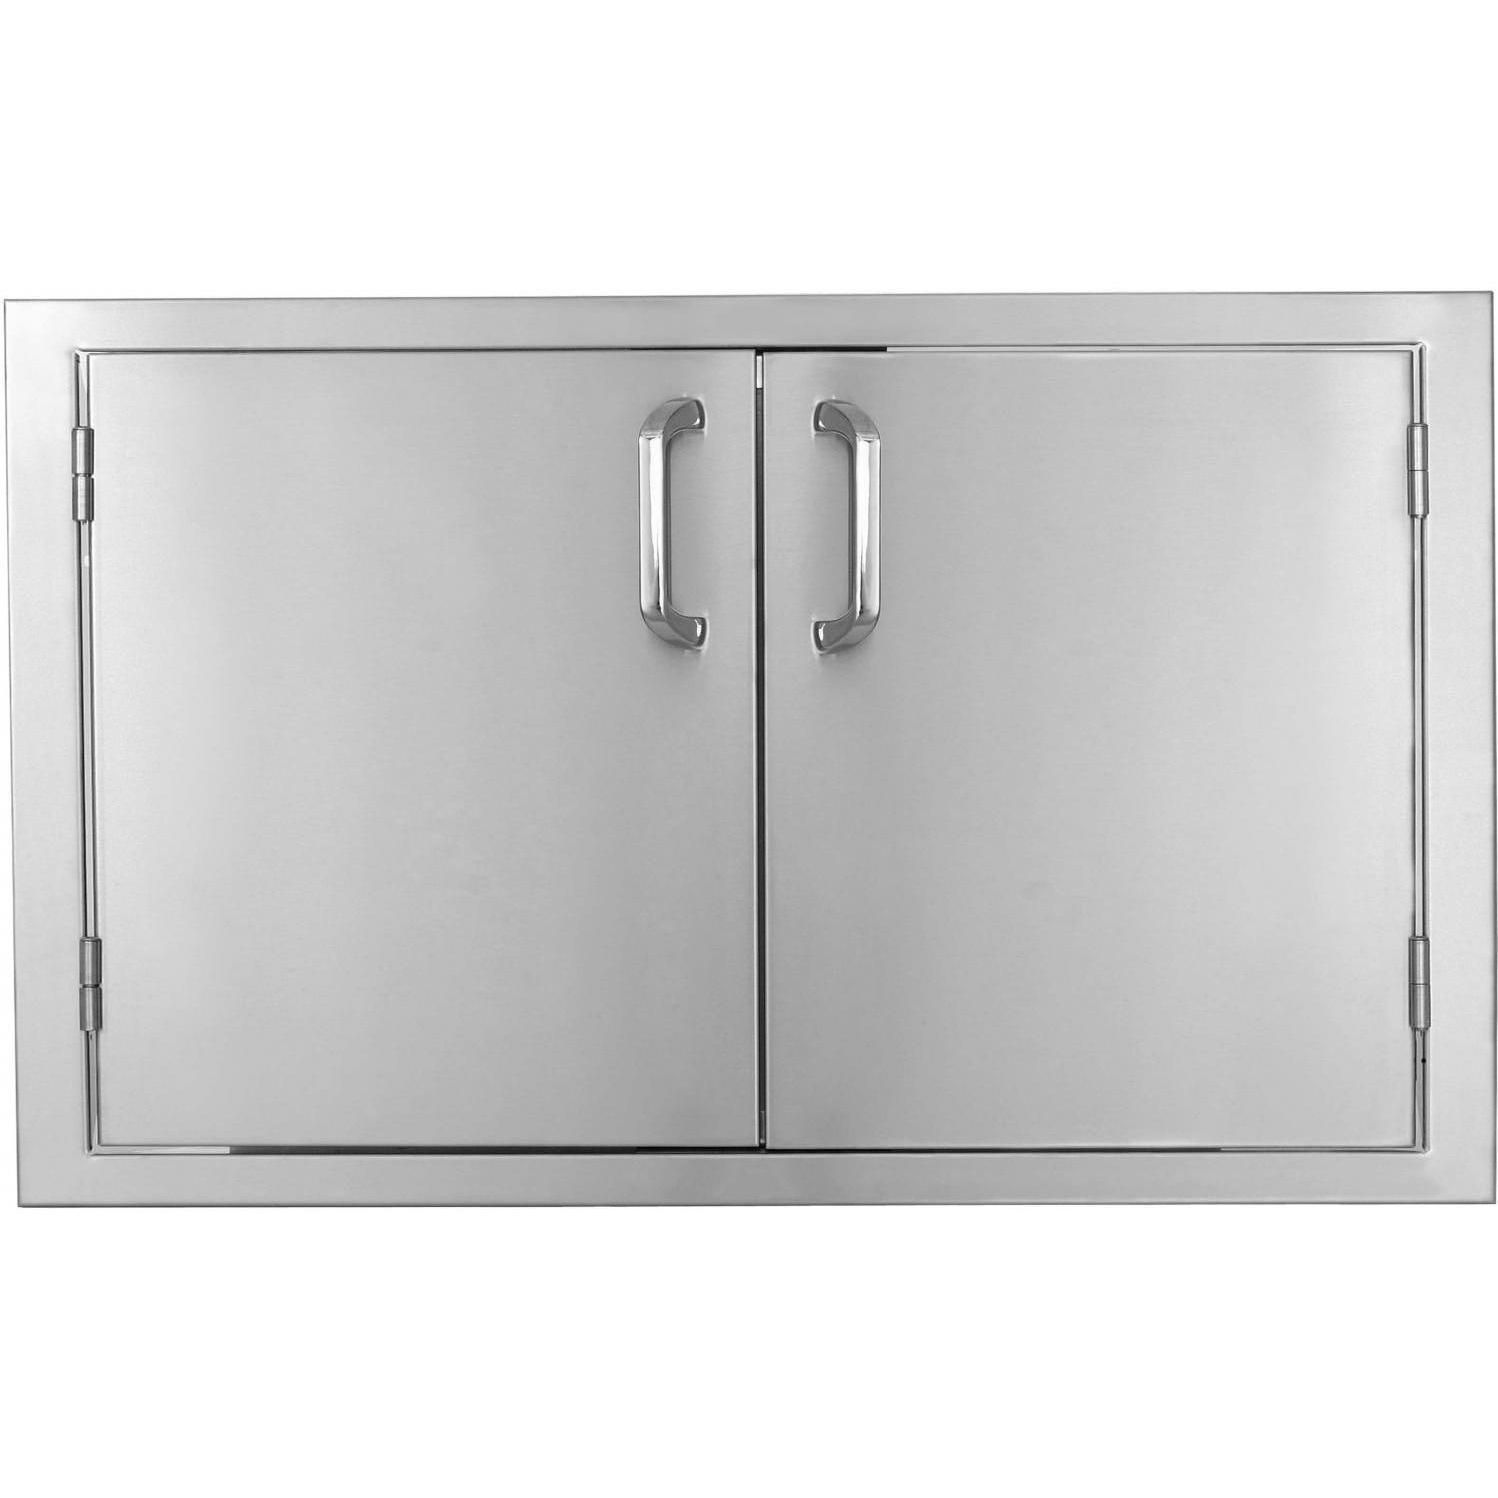 Stainless Steel Doors For Outdoor Kitchens Httpjubizinfo